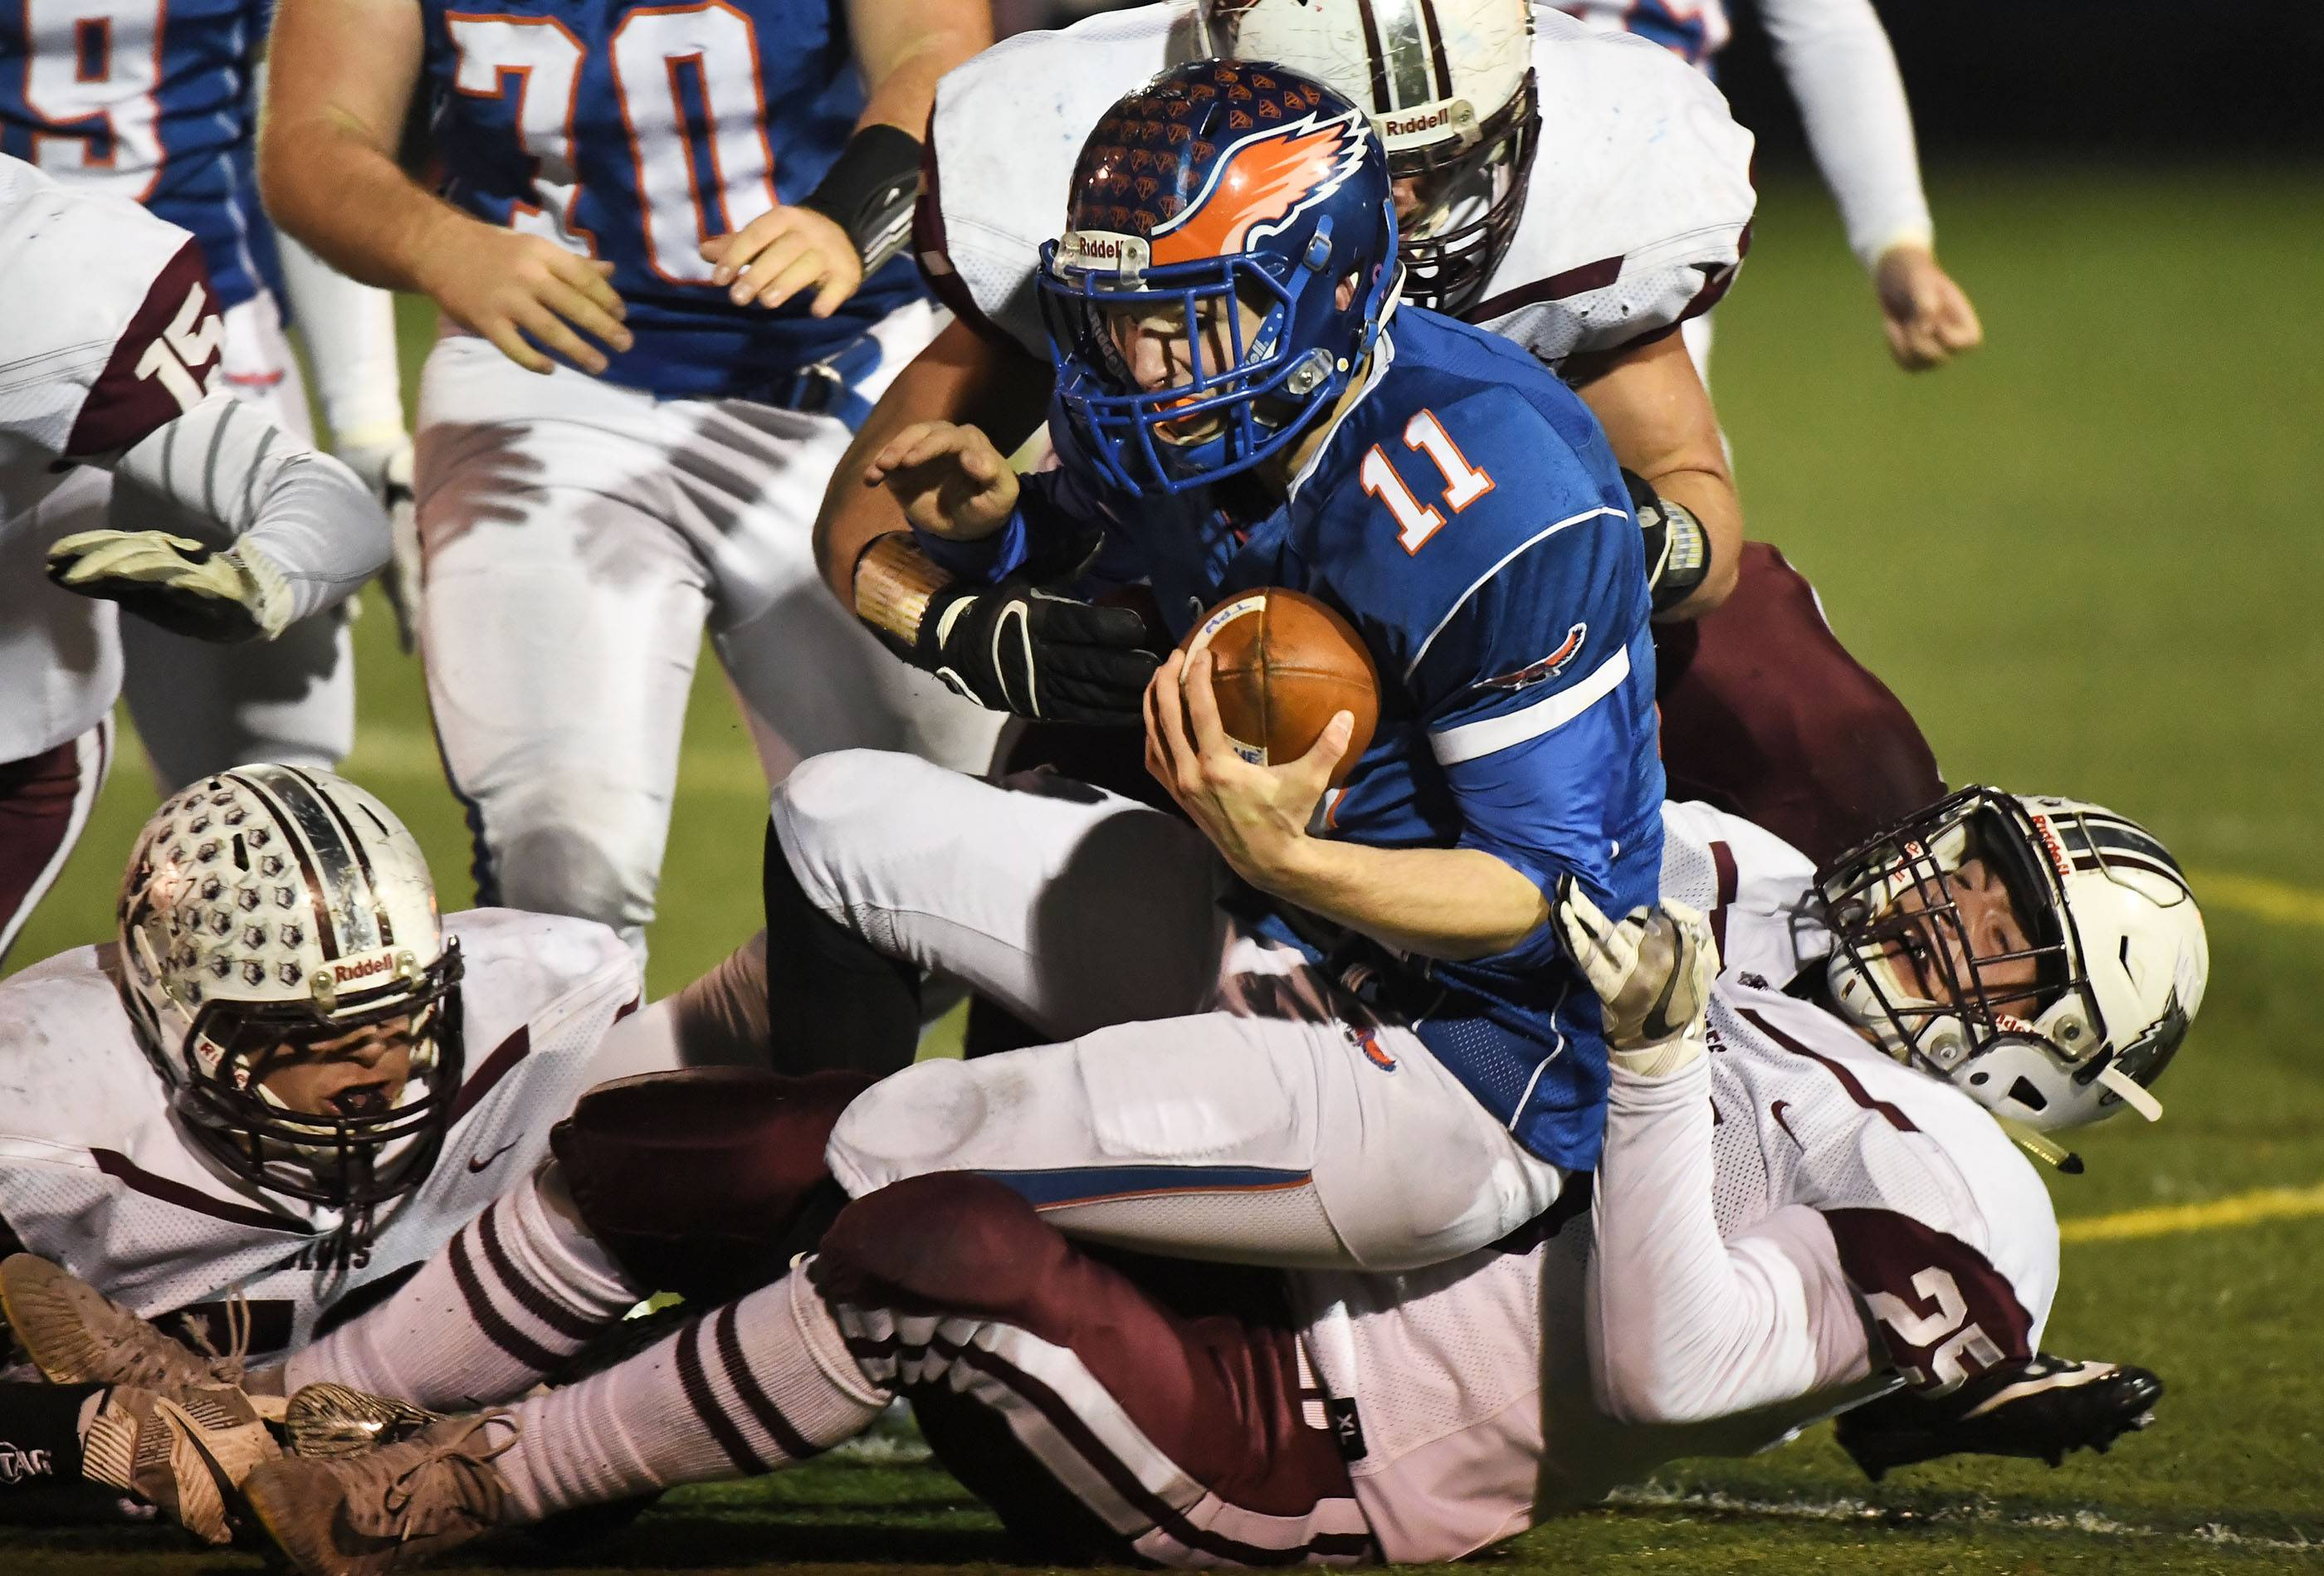 Hoffman Estates' Austin Coalson is sacked by Prairie Ridge's Jacob Ommen late in Saturday's Class 6A semifinal matchup at Hoffman Estates.